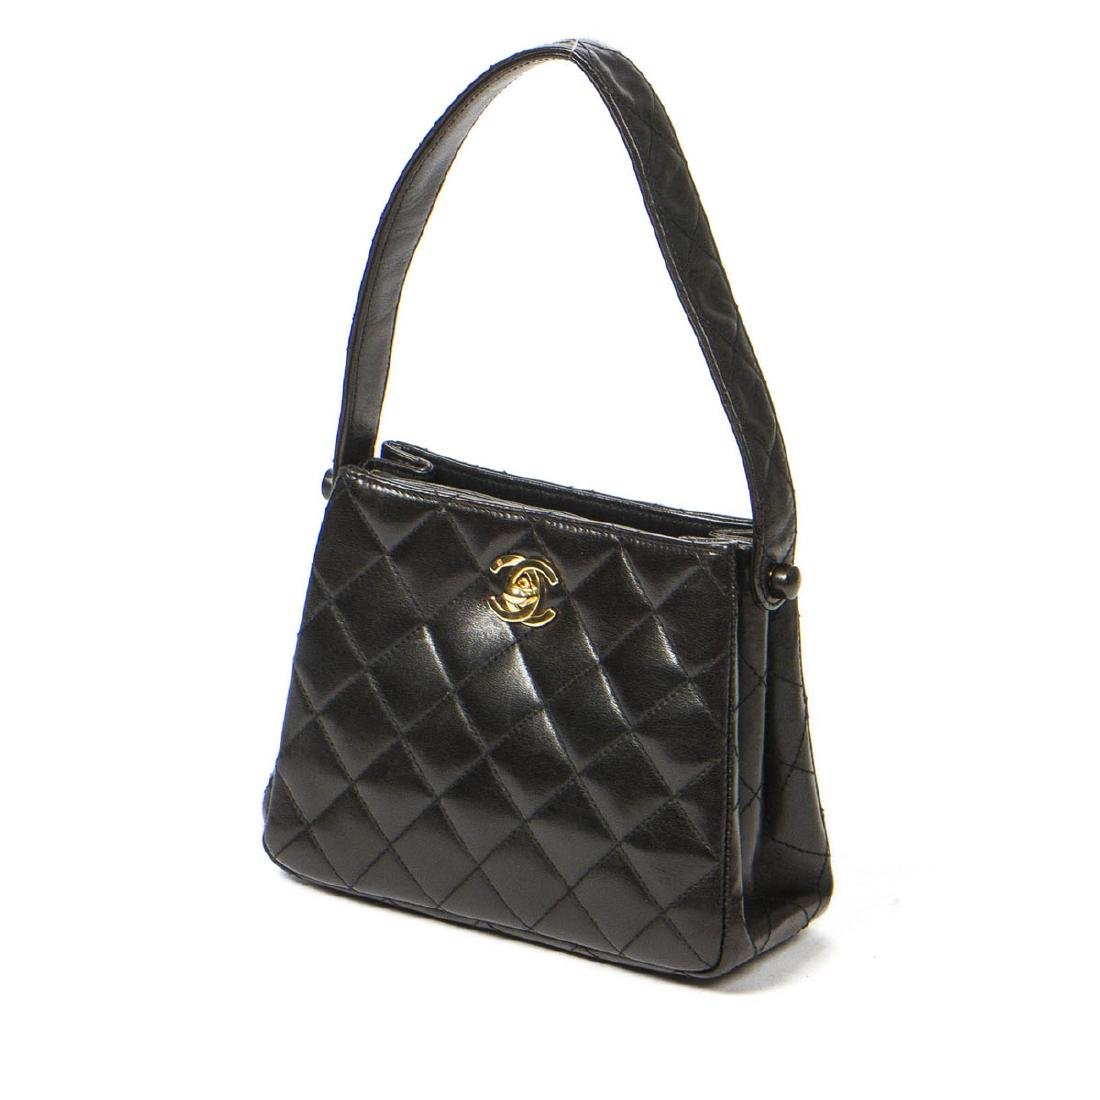 Chanel Small Handbag in Black Quilted leather - 2